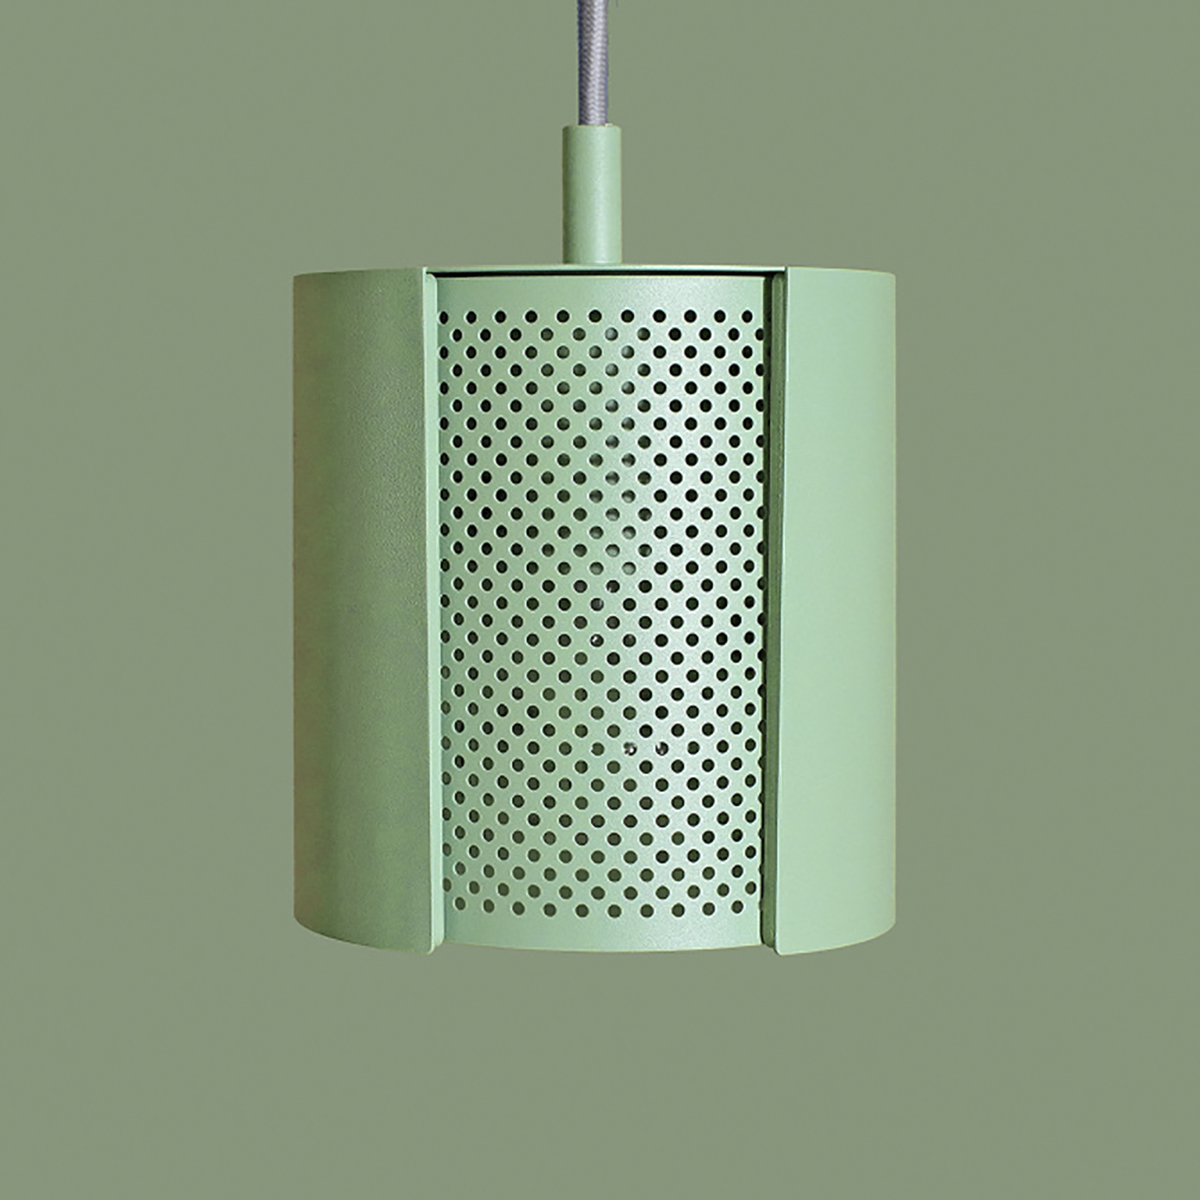 Ogen lamp for borcas by Agata Nowak - Creative Work - $i